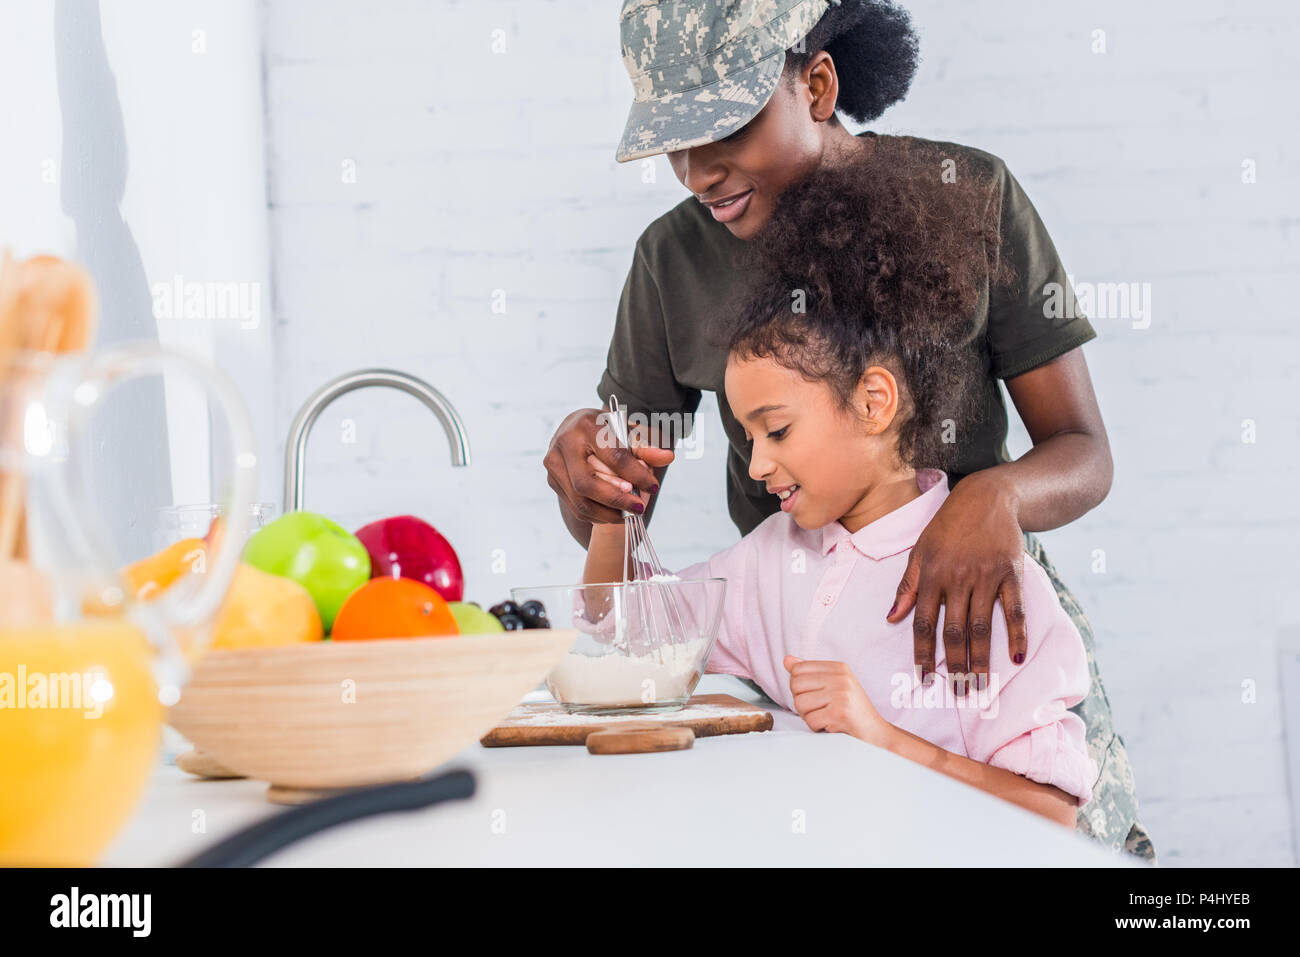 African american soldier with little daughter cooking together at home kitchen - Stock Image